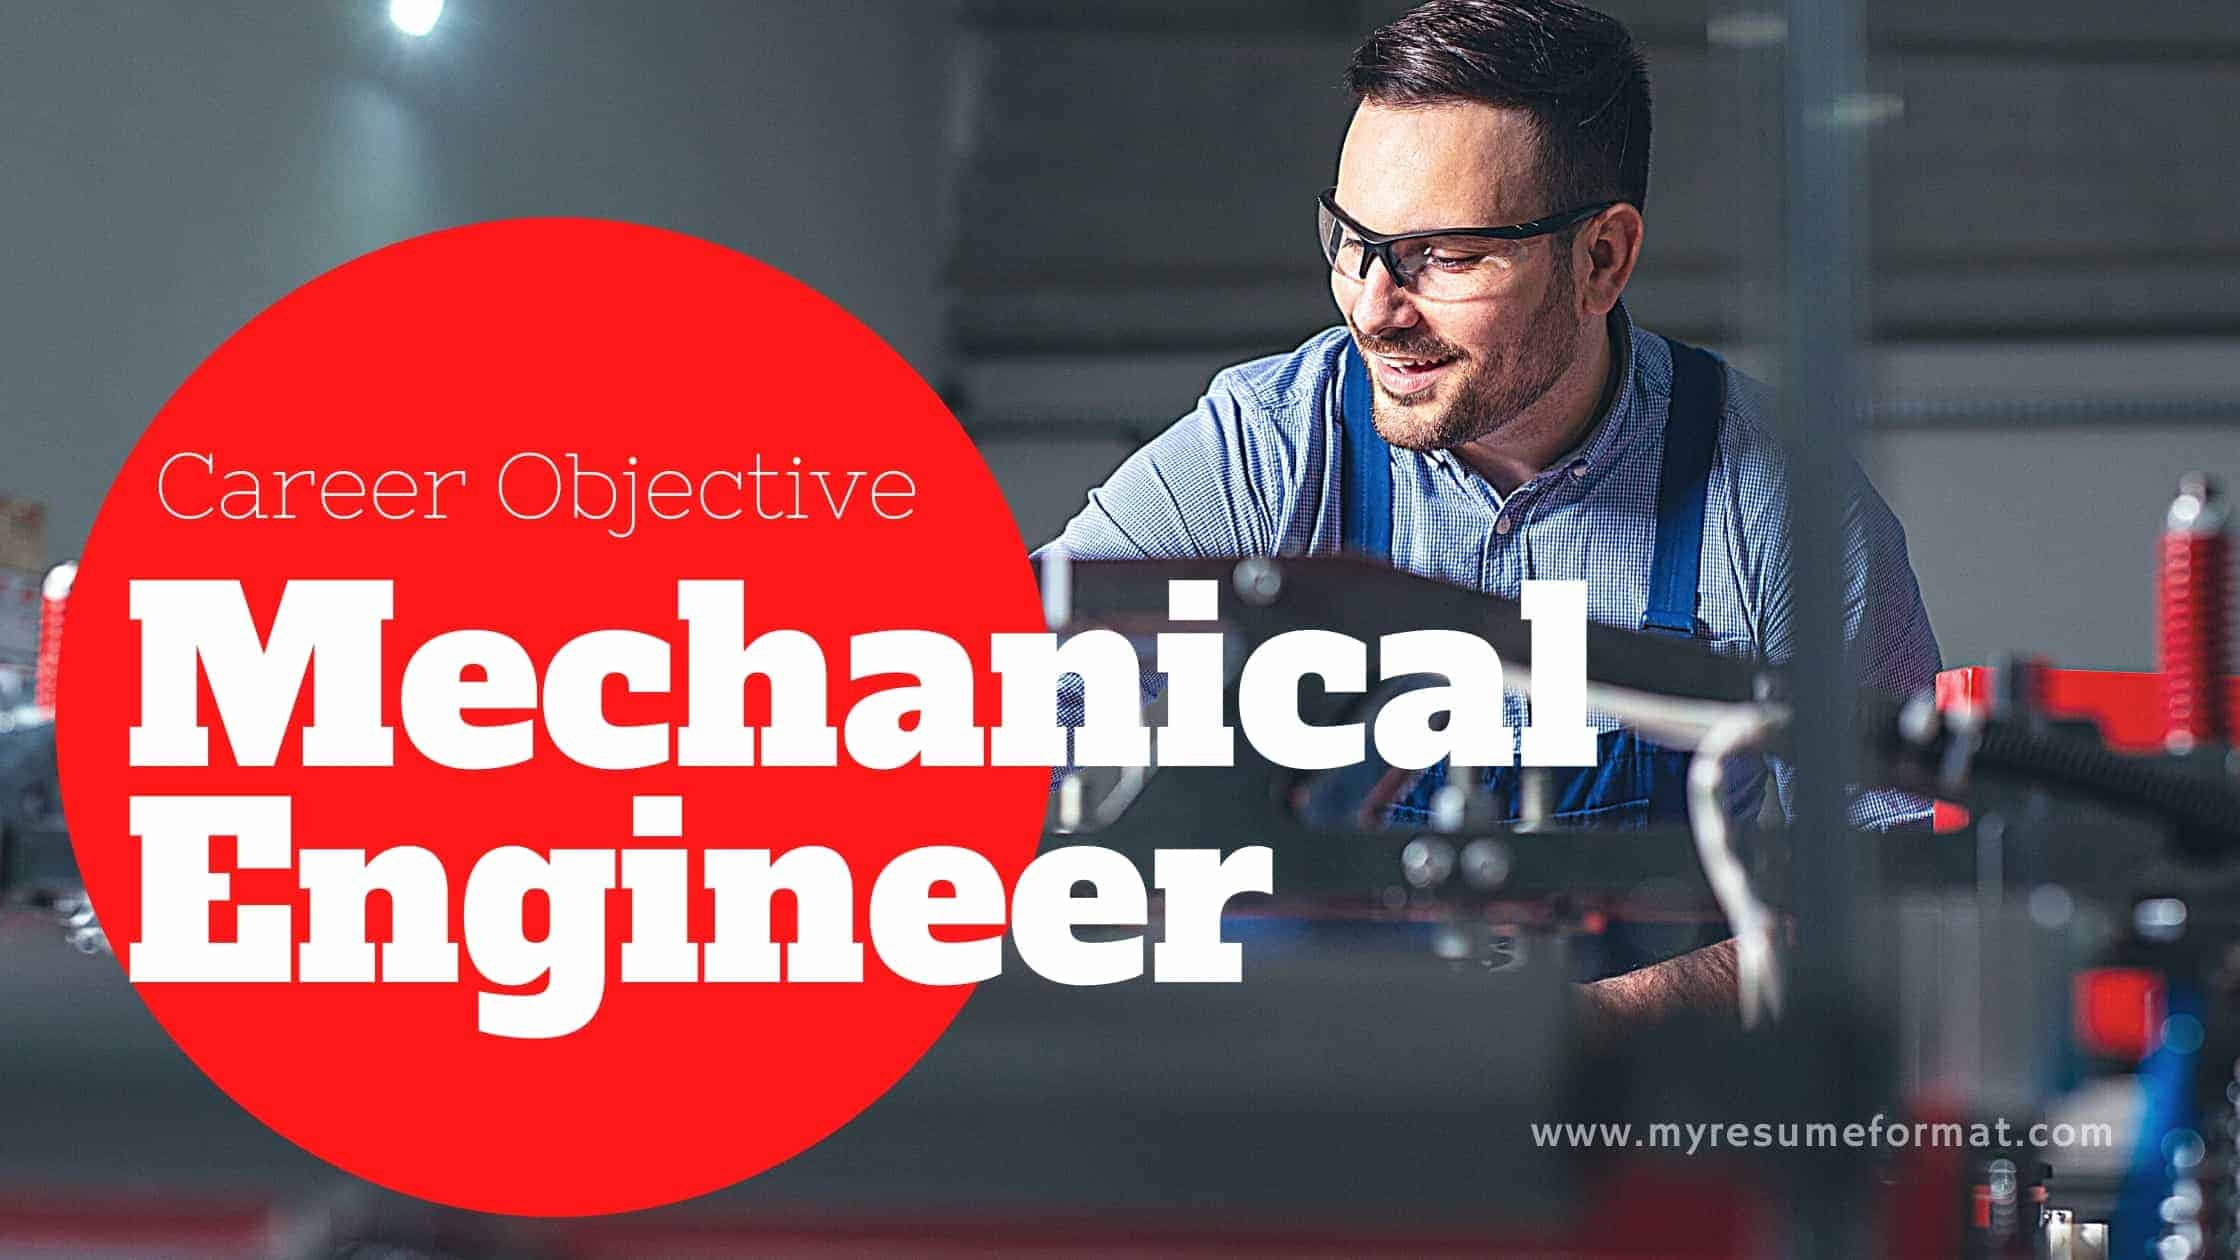 Mechanicl Engineer career objective for resume